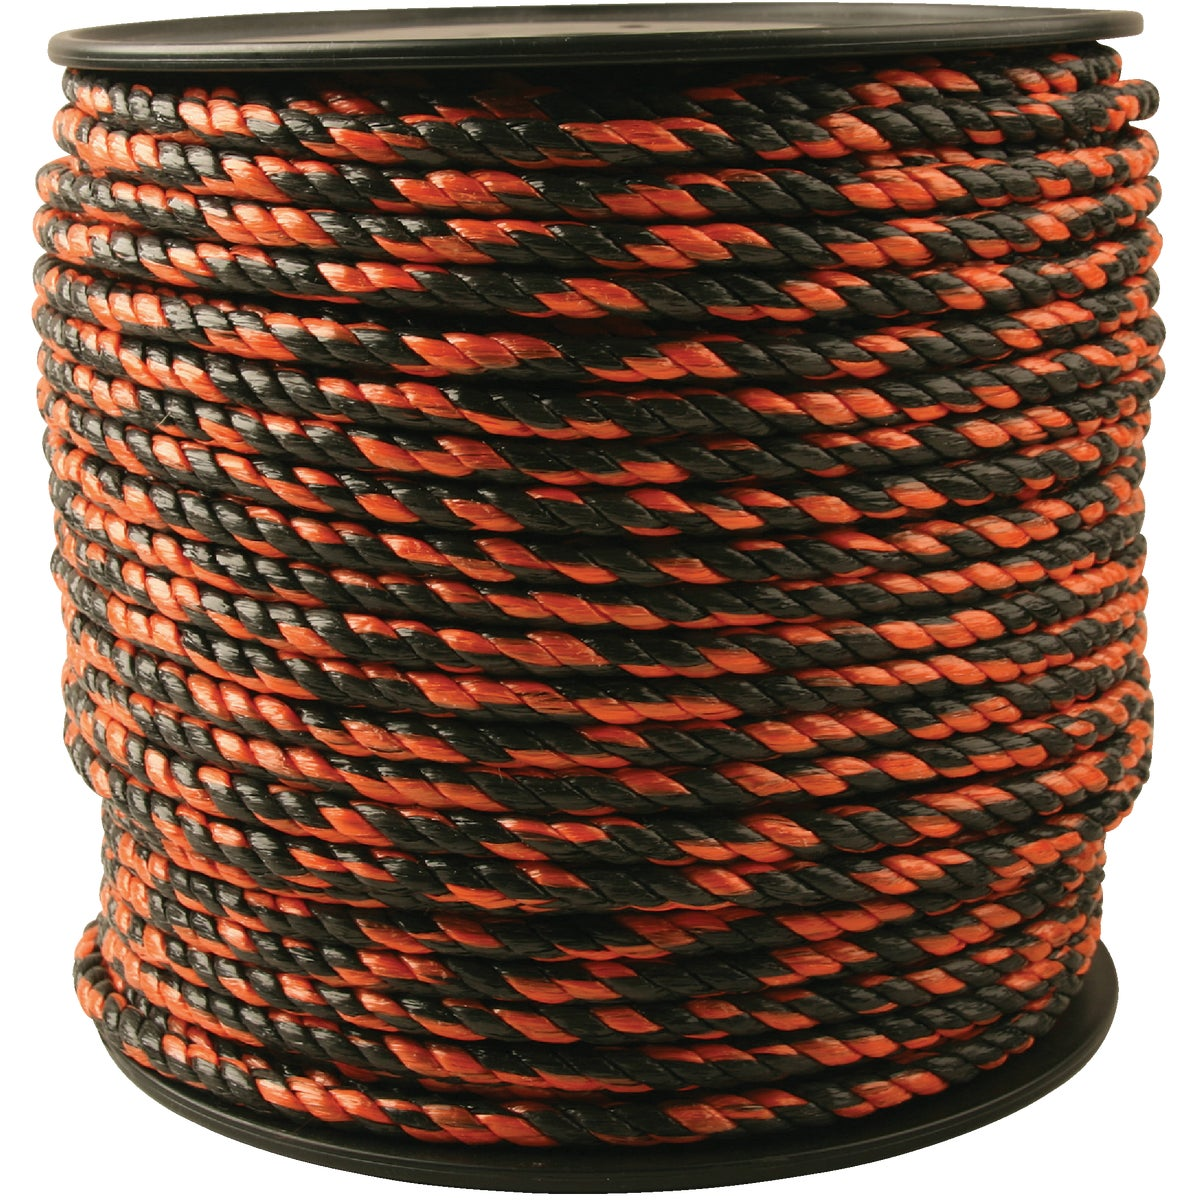 "3/8""X600' TRUCK ROPE"